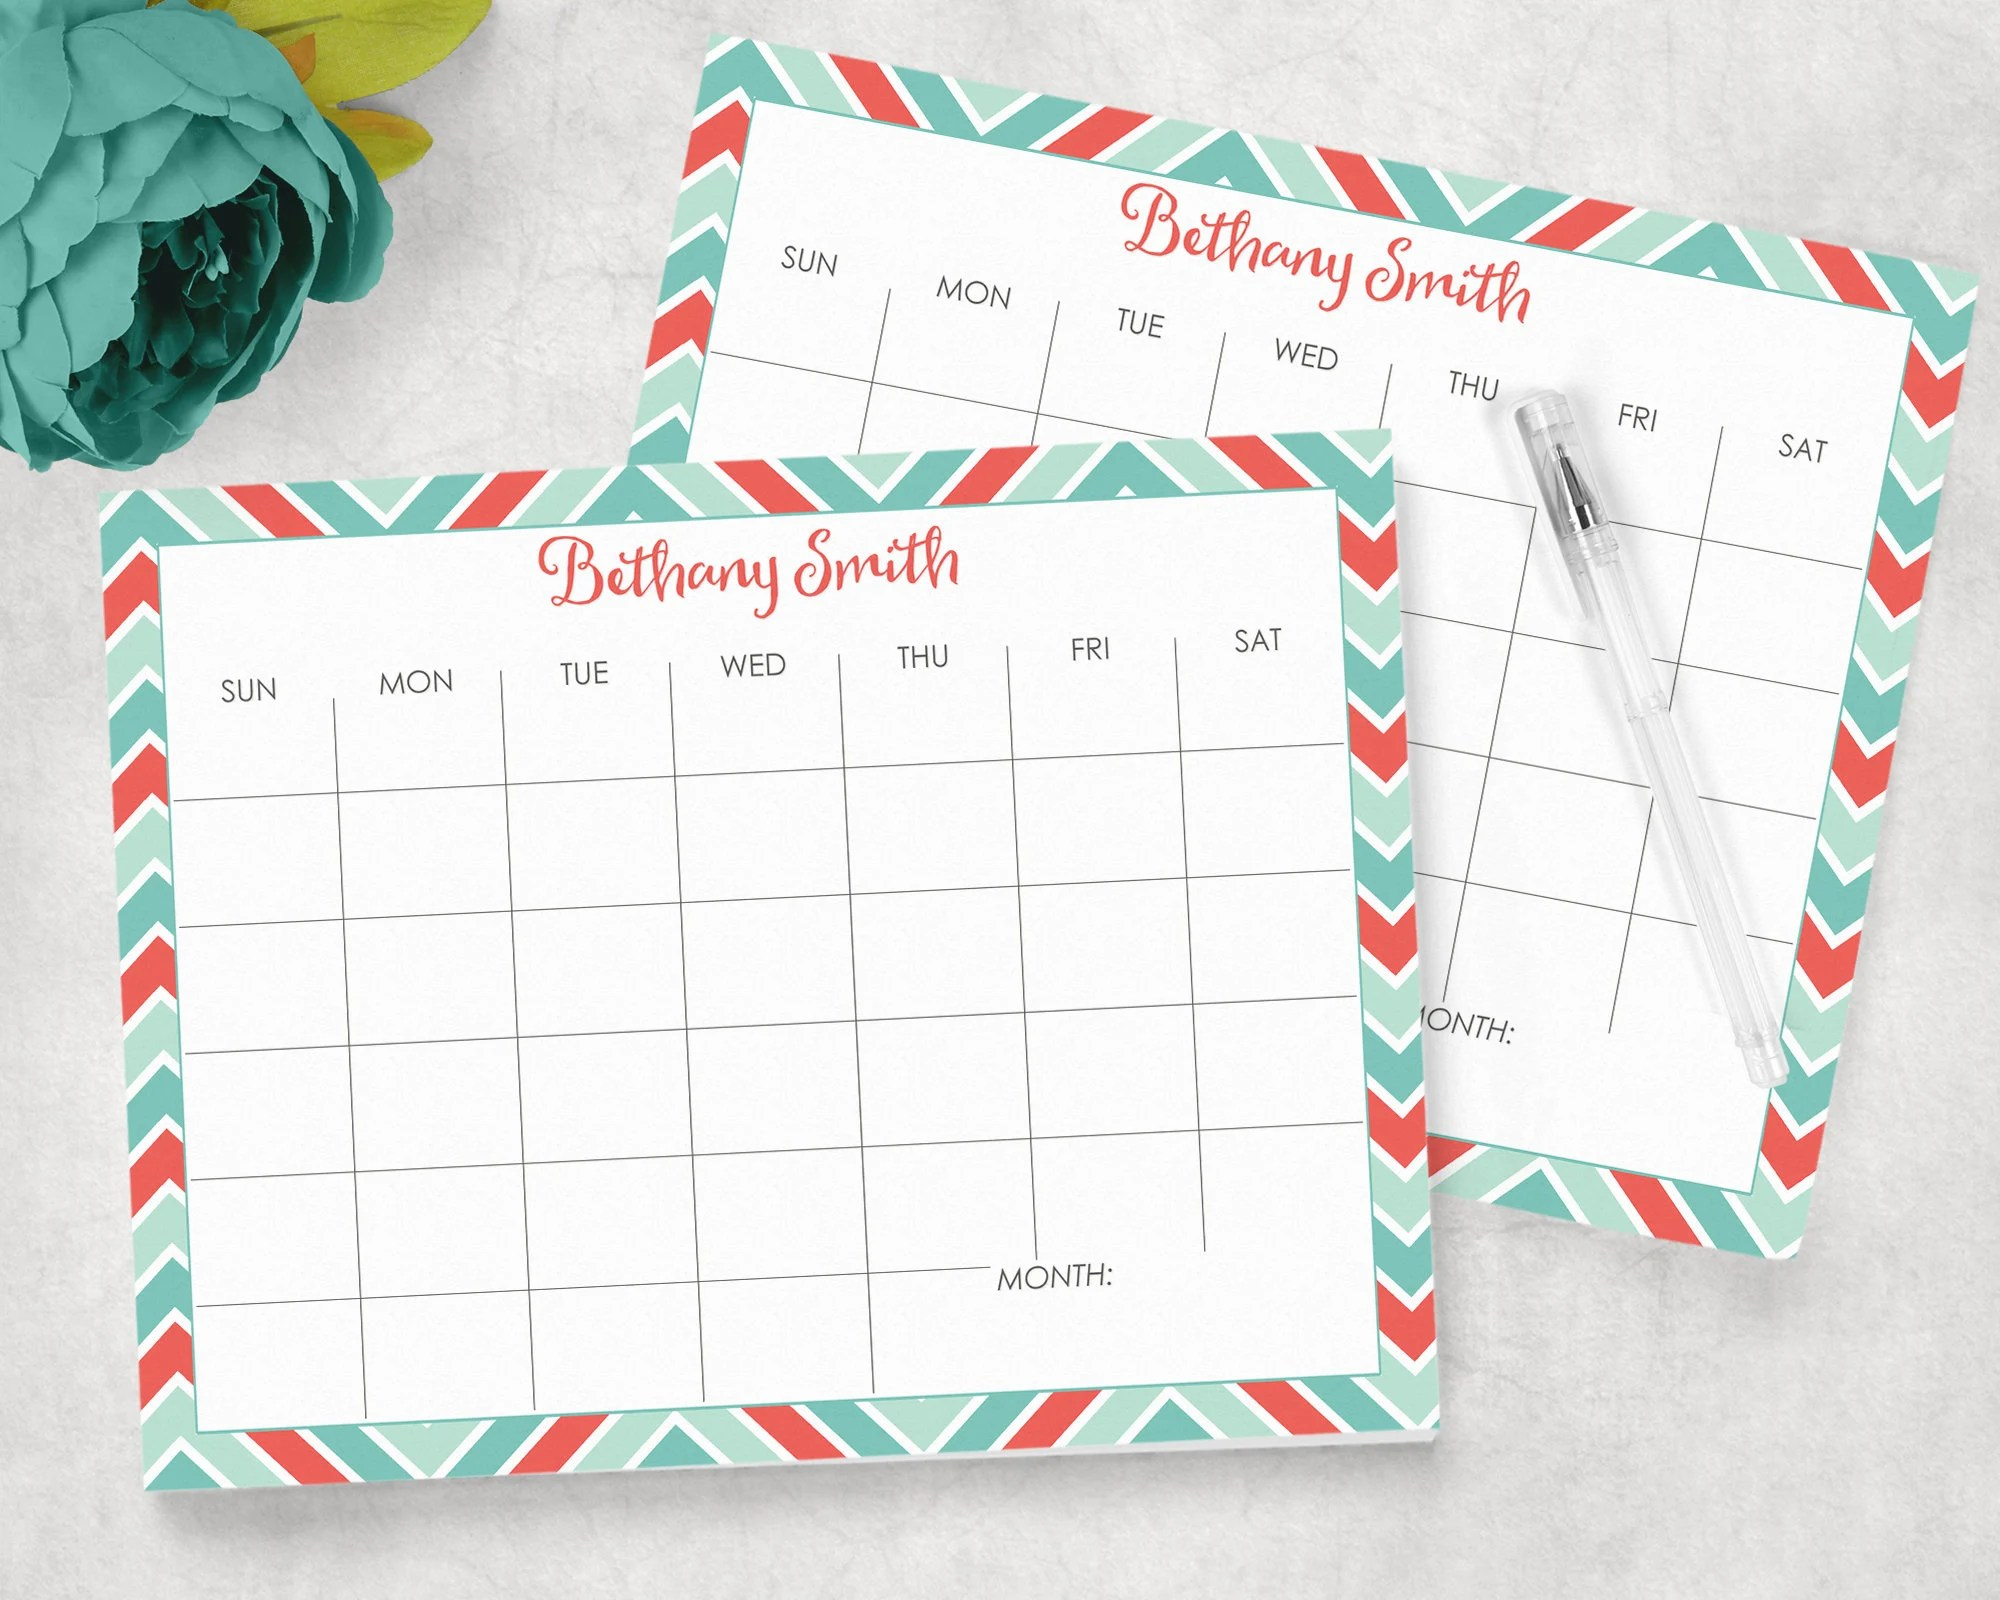 Personalized monthly calendar pad chevron print 85x11 Etsy